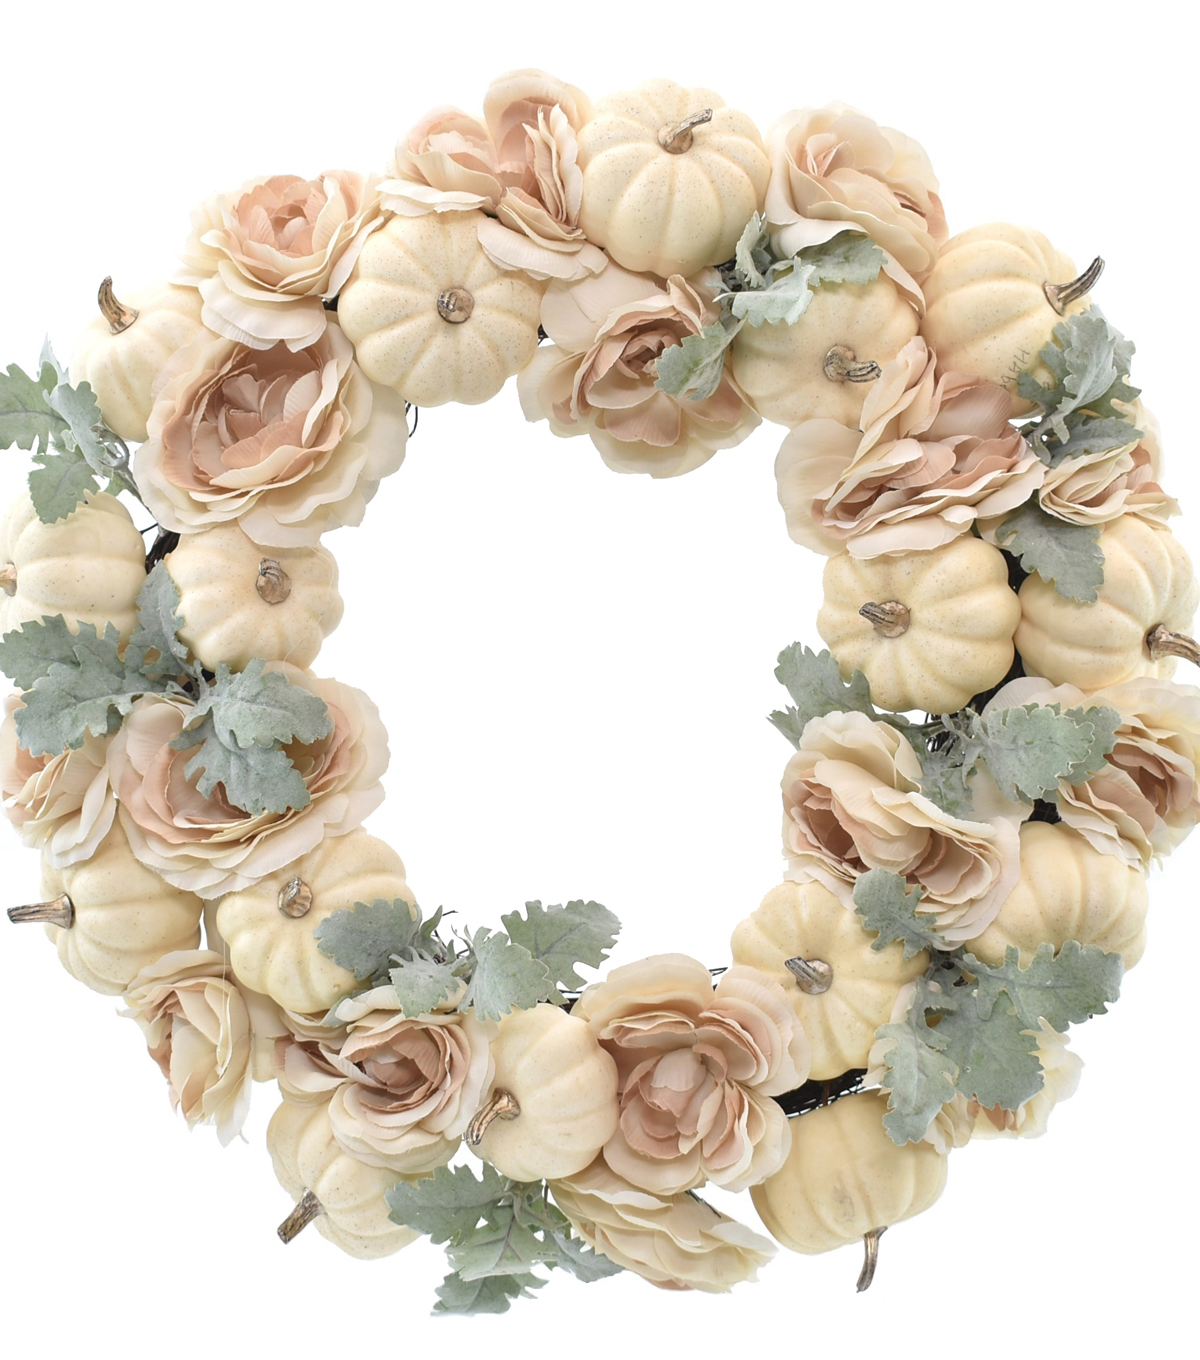 Blooming Autumn Pumpkin, Rose & Leaves Wreath Cream              Blooming Autumn Pumpkin, Rose & Leaves Wreath Cream by Blooming Autumn